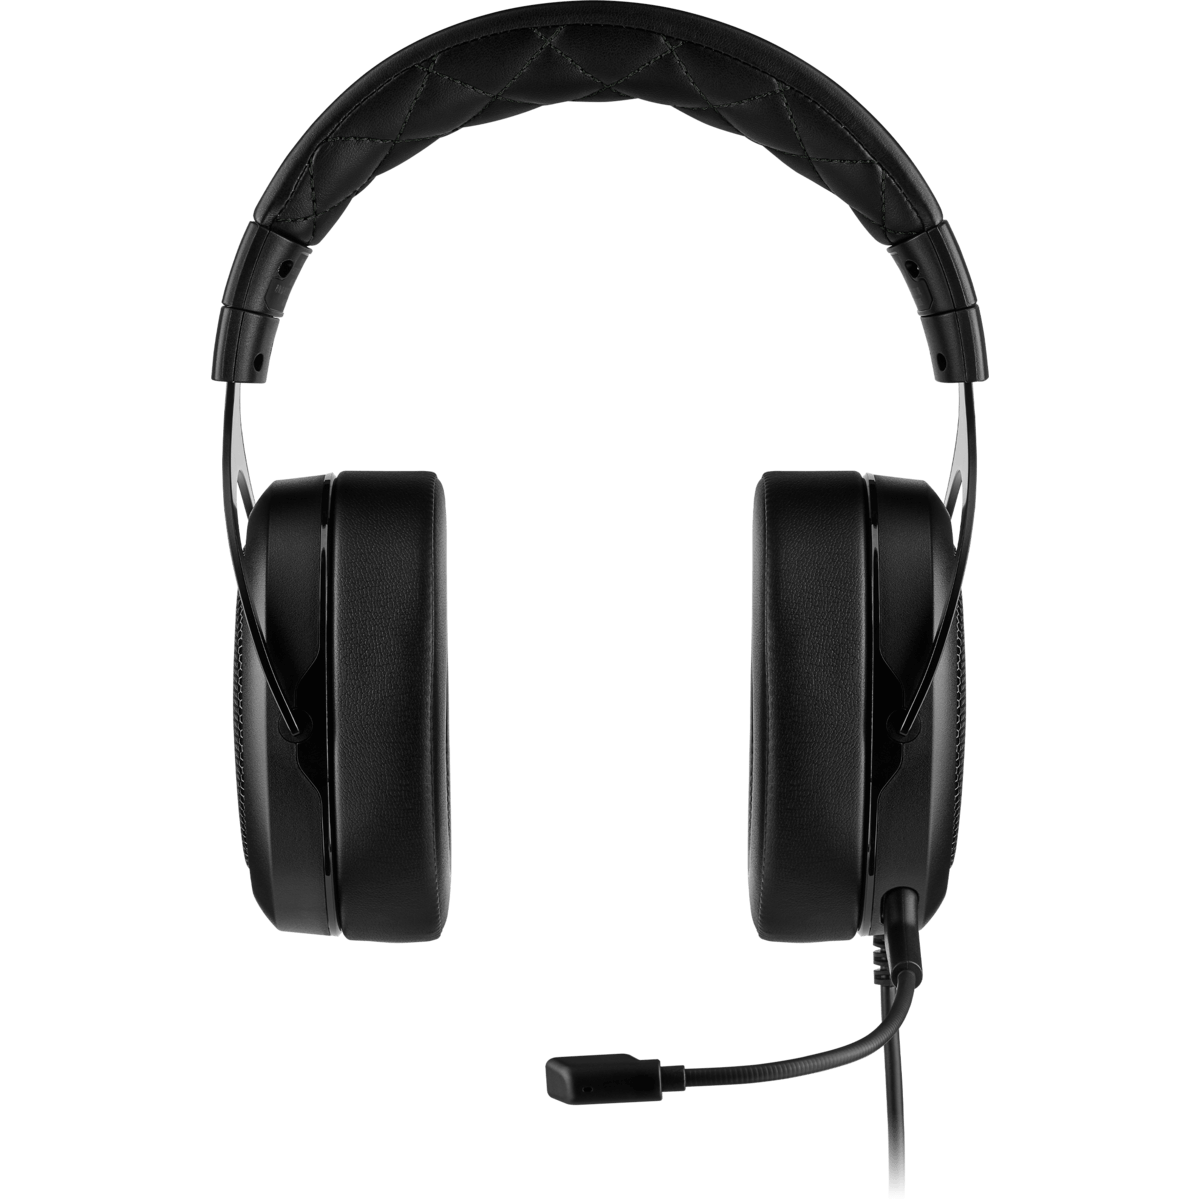 Headset Gamer Corsair HS50 Pro Stereo Carbon, CA-9011215-NA